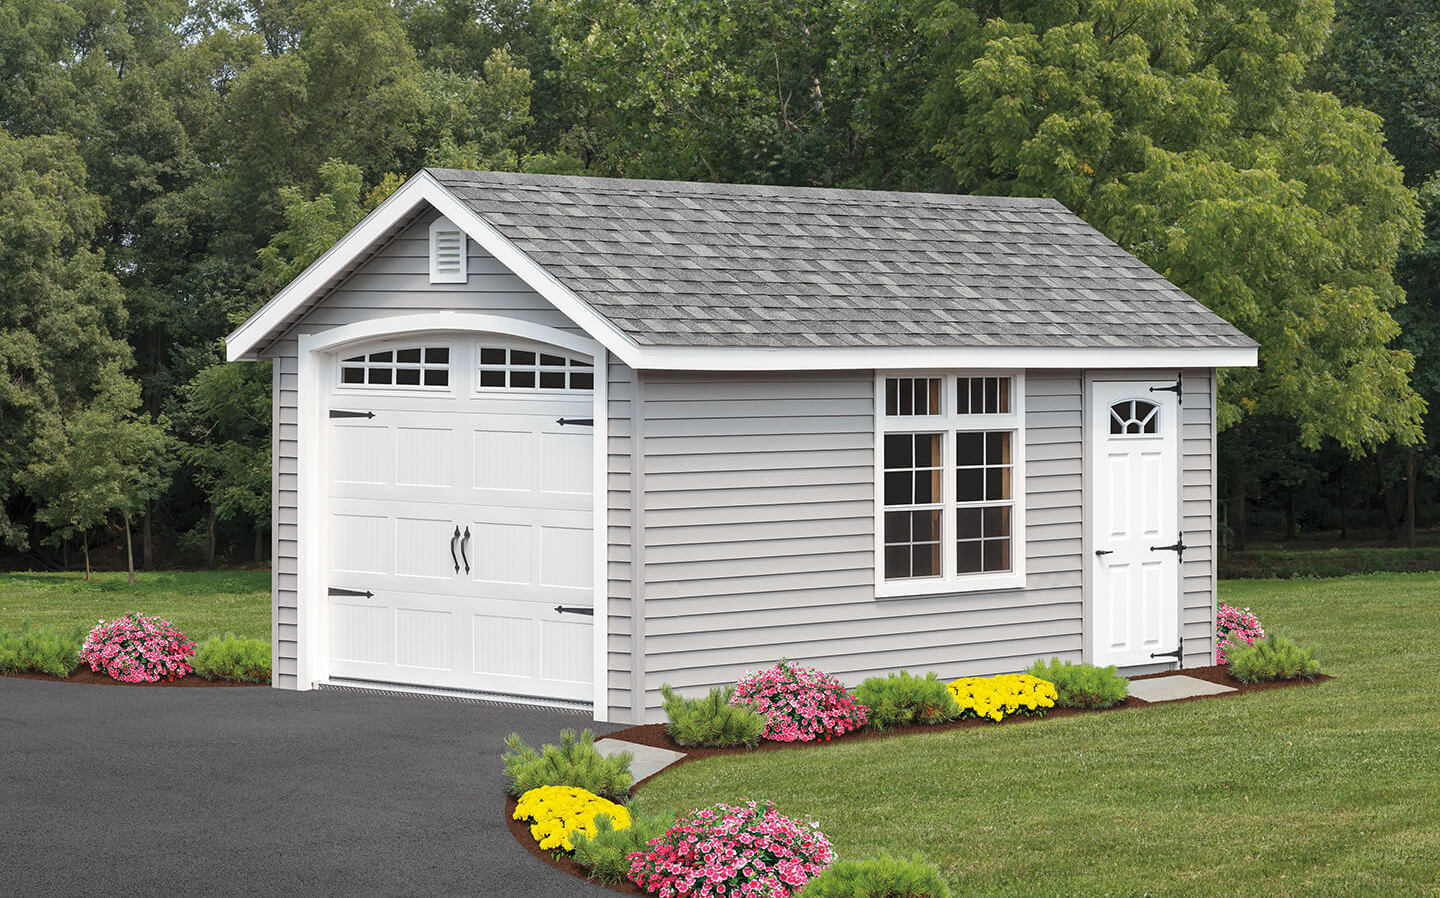 10 by 18 garage in Long Island NY.